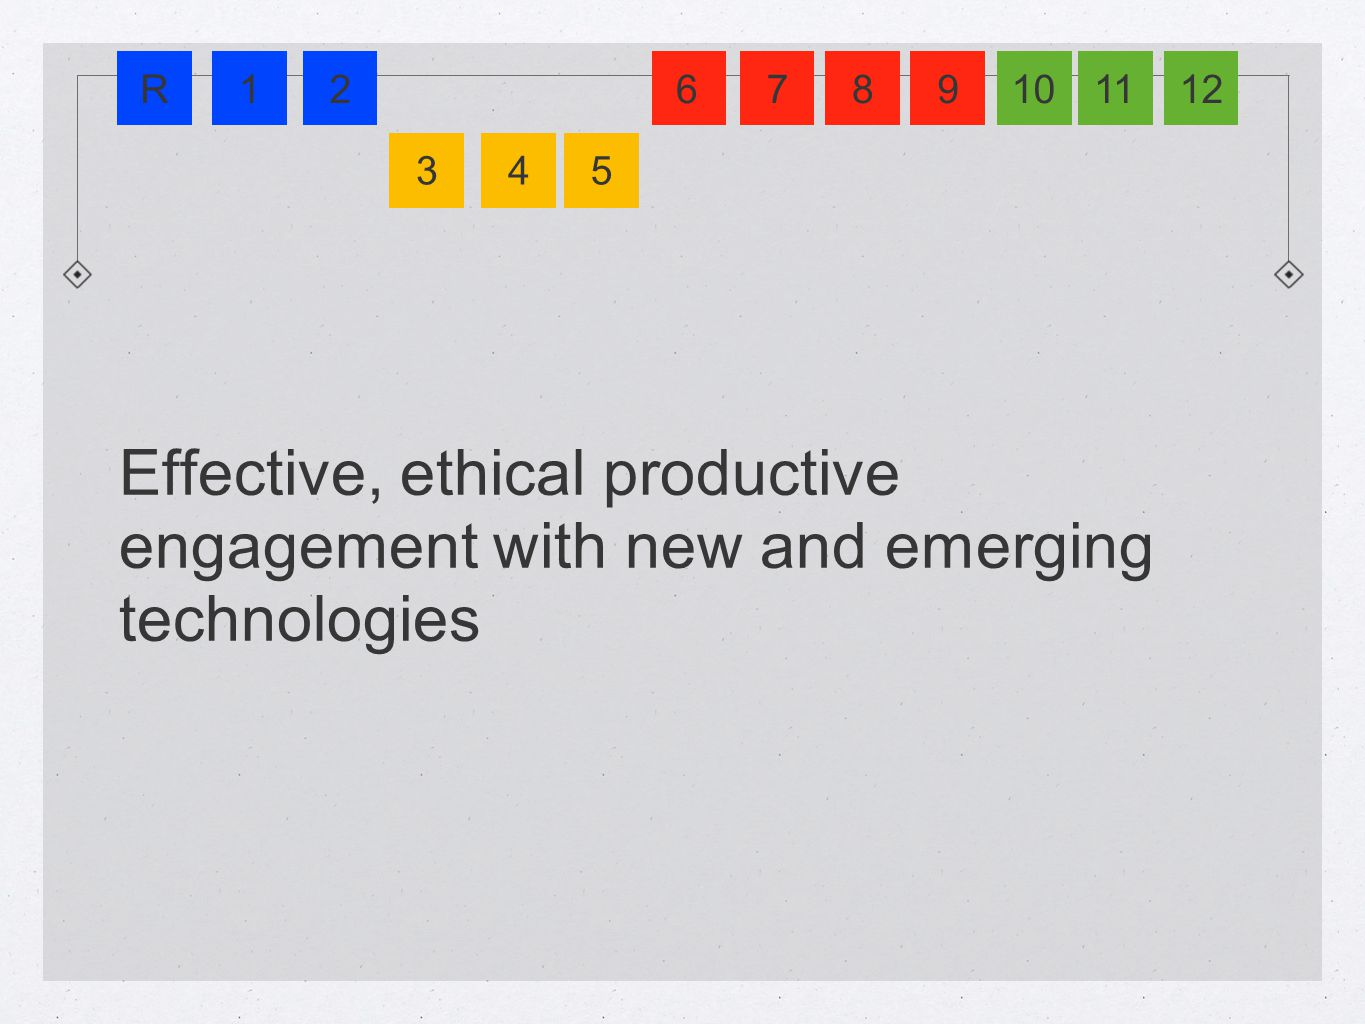 Effective, ethical productive engagement with new and emerging technologies R12 345 6781091211